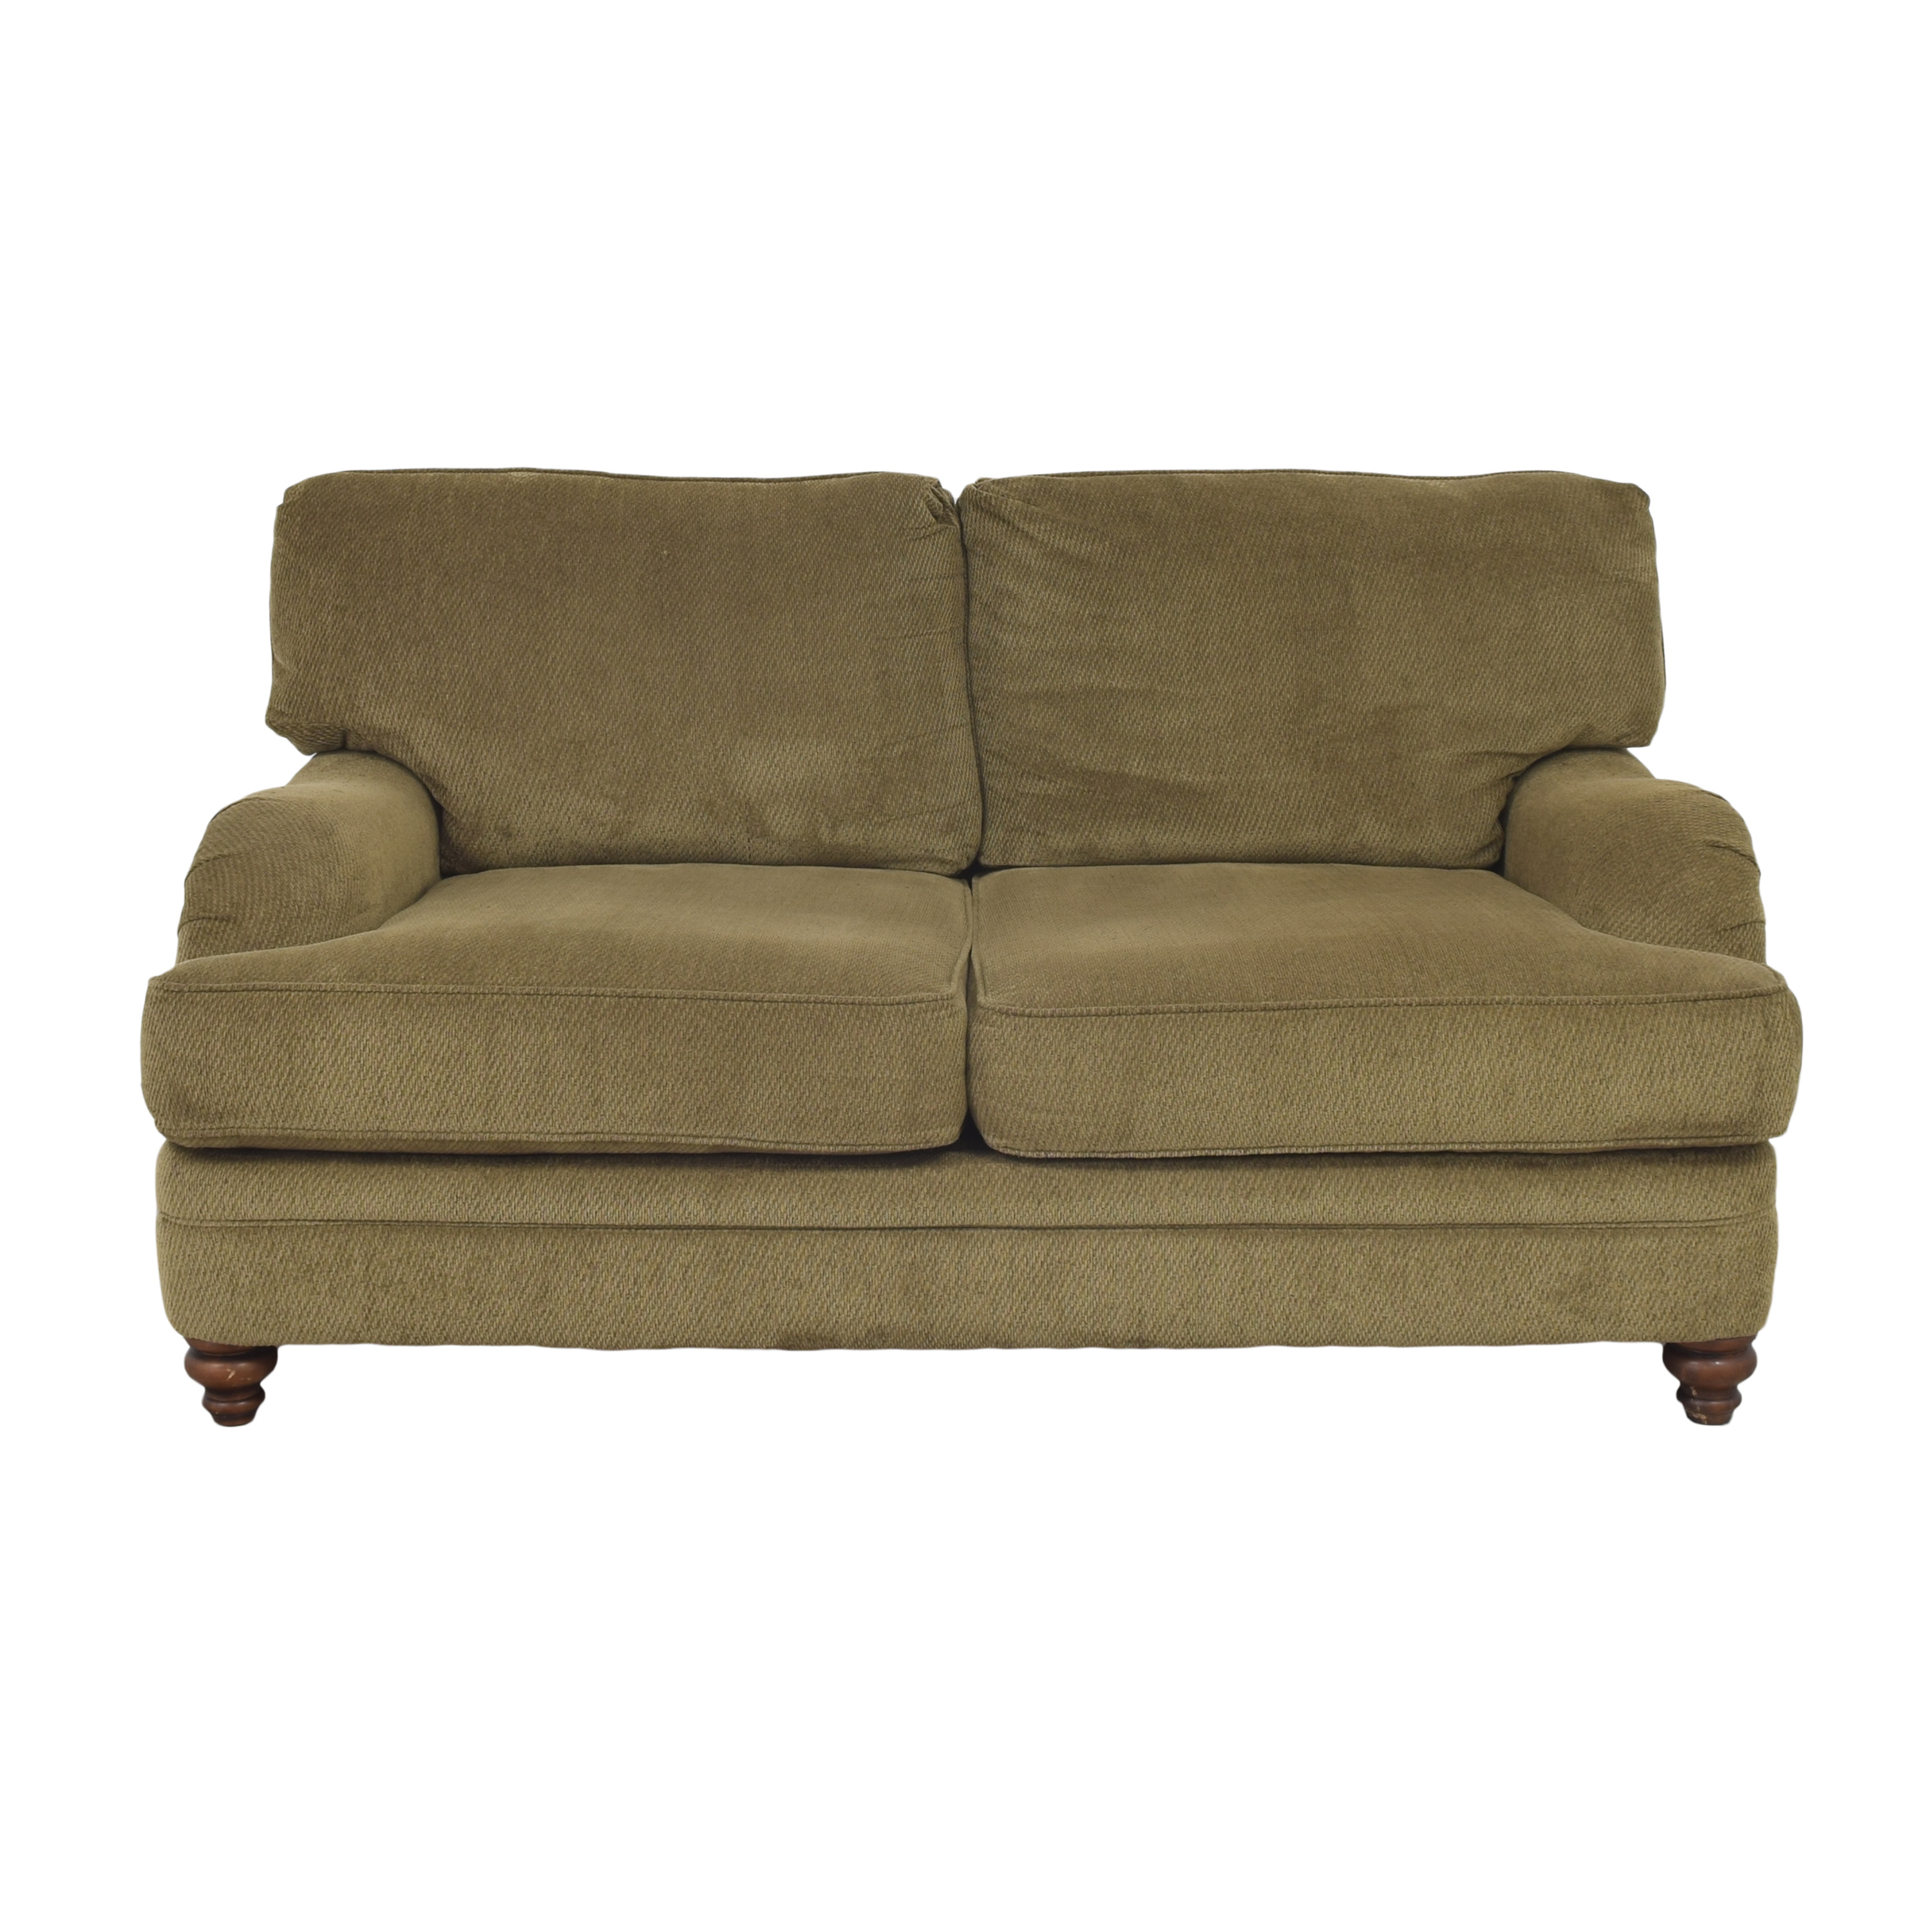 buy Raymour & Flanigan Chenille Loveseat Raymour & Flanigan Loveseats